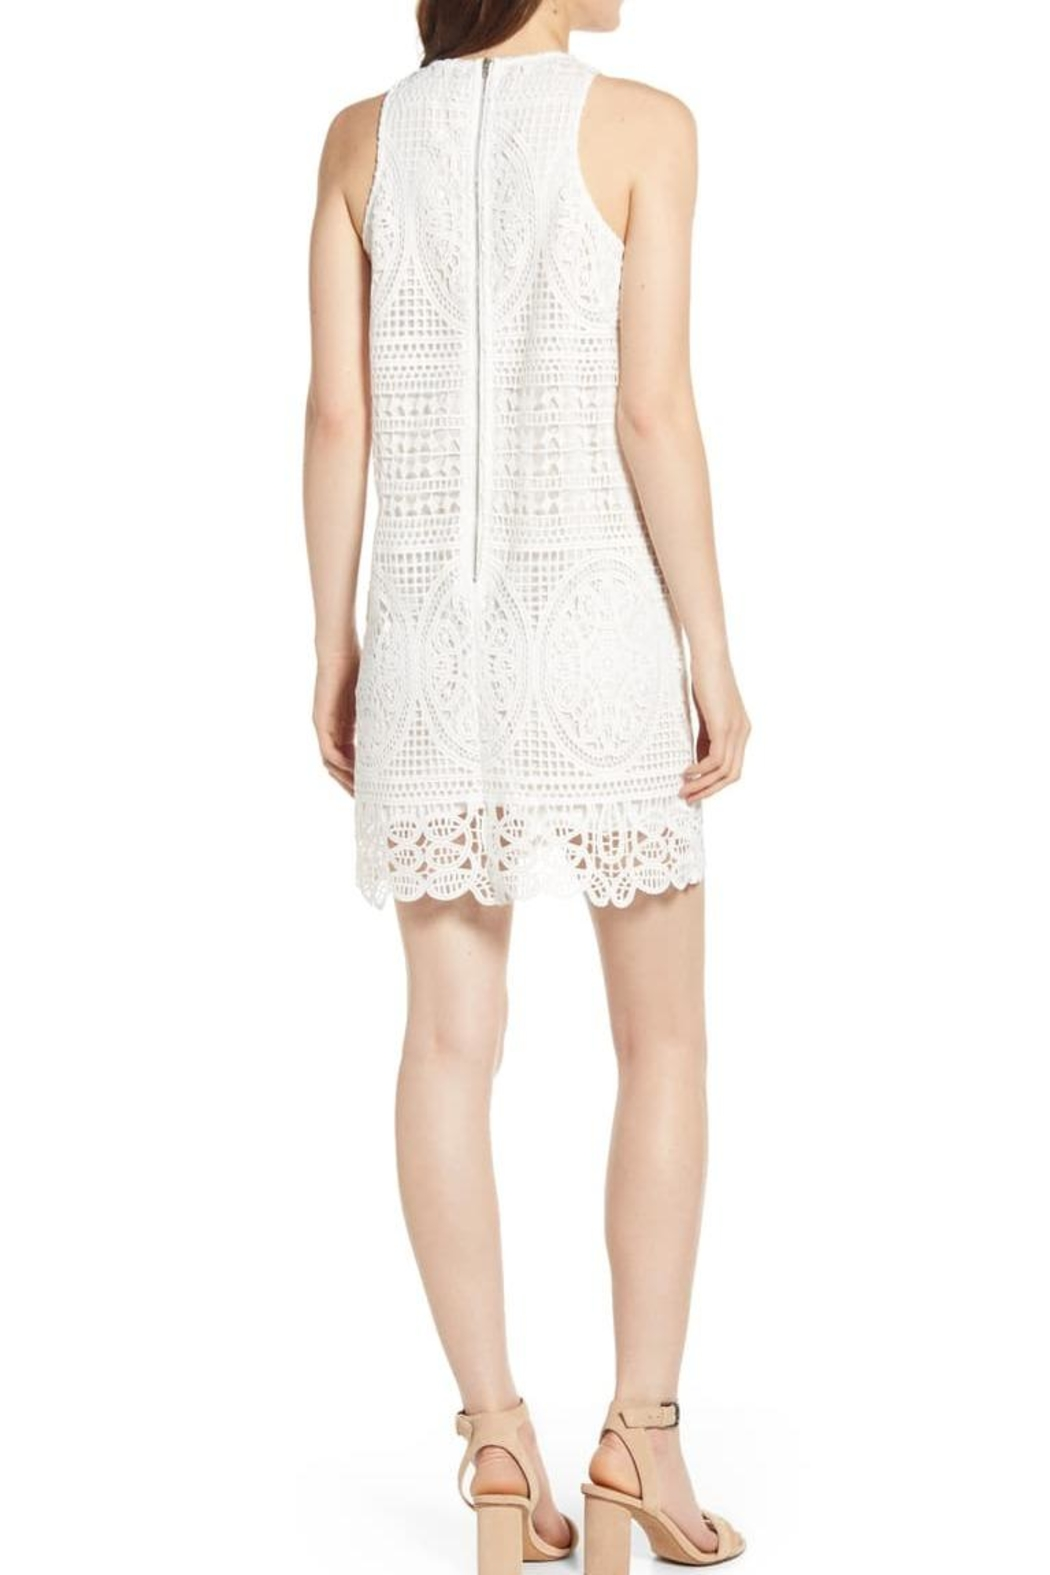 Bishop + Young Lace Crochet Dress - Front Full Image